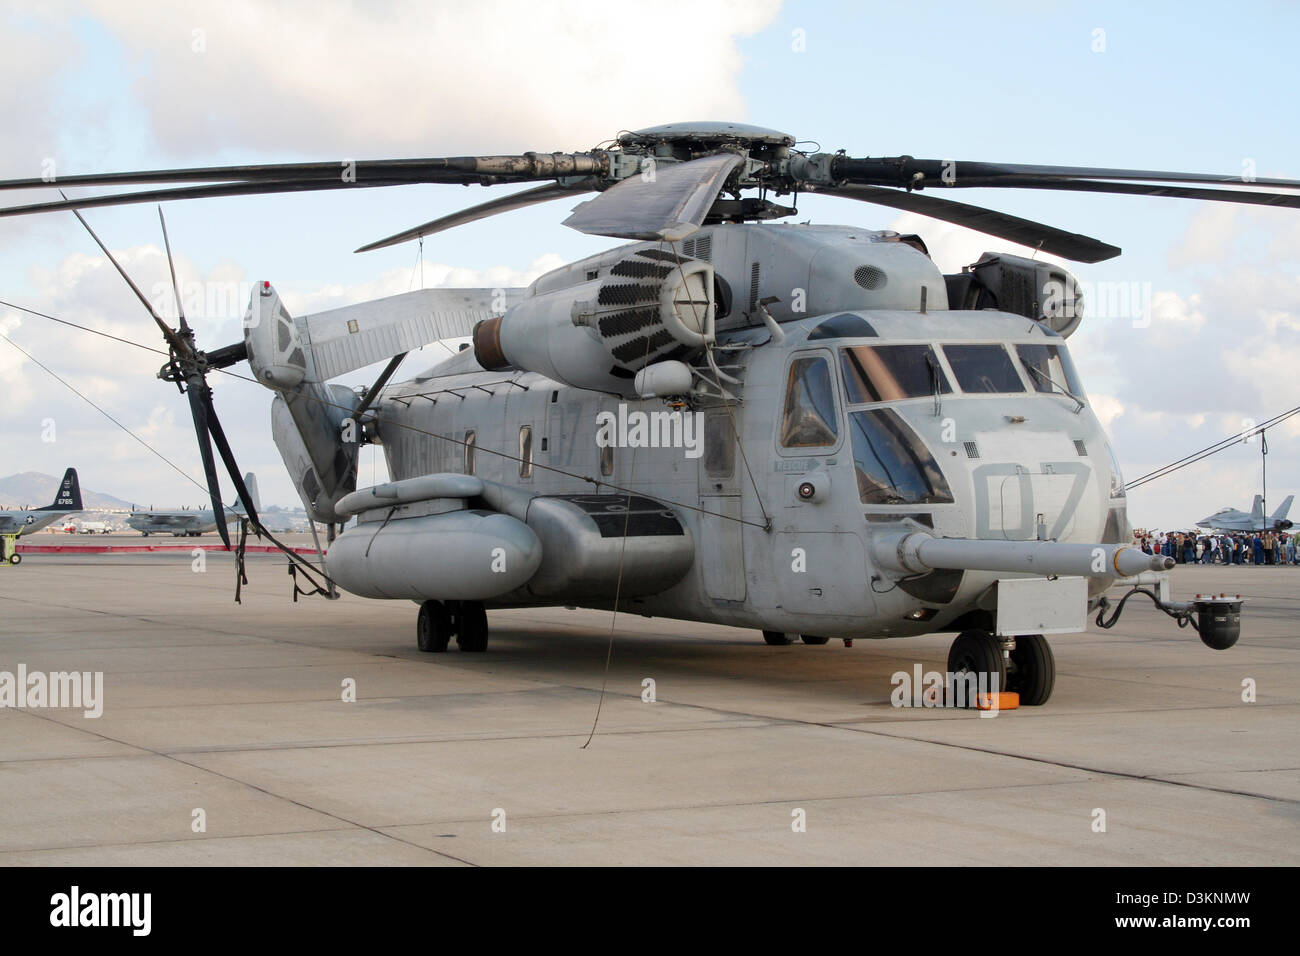 Us marines ch 53e super stallion helicopter on display at for The miramar